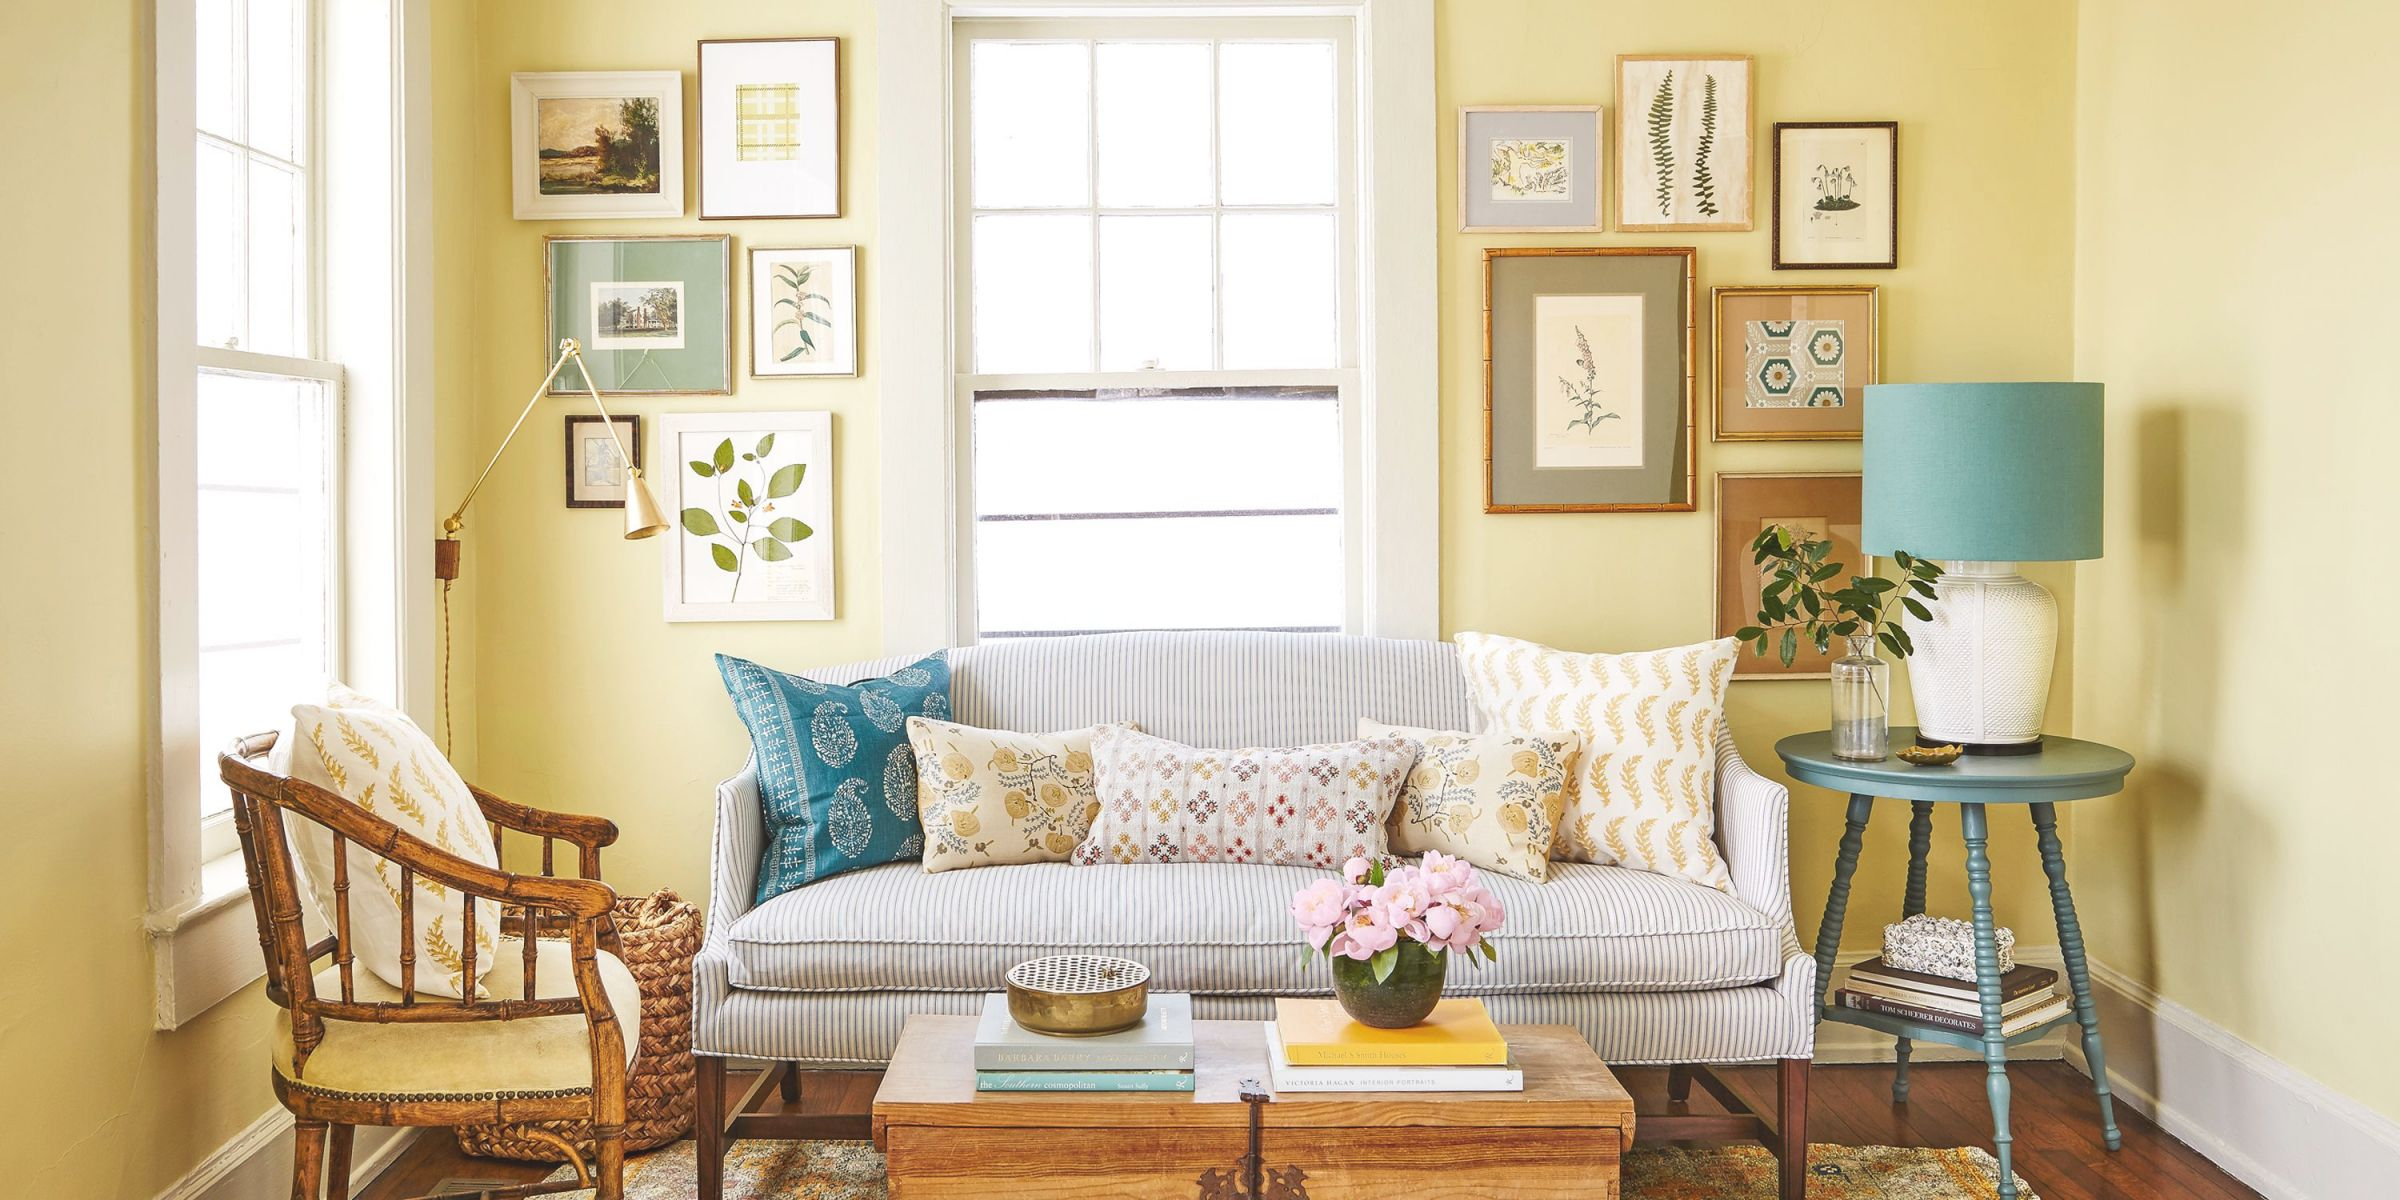 100+ Living Room Decorating Ideas – Design Photos Of Family intended for Unique Yellow Walls Living Room Interior Decor